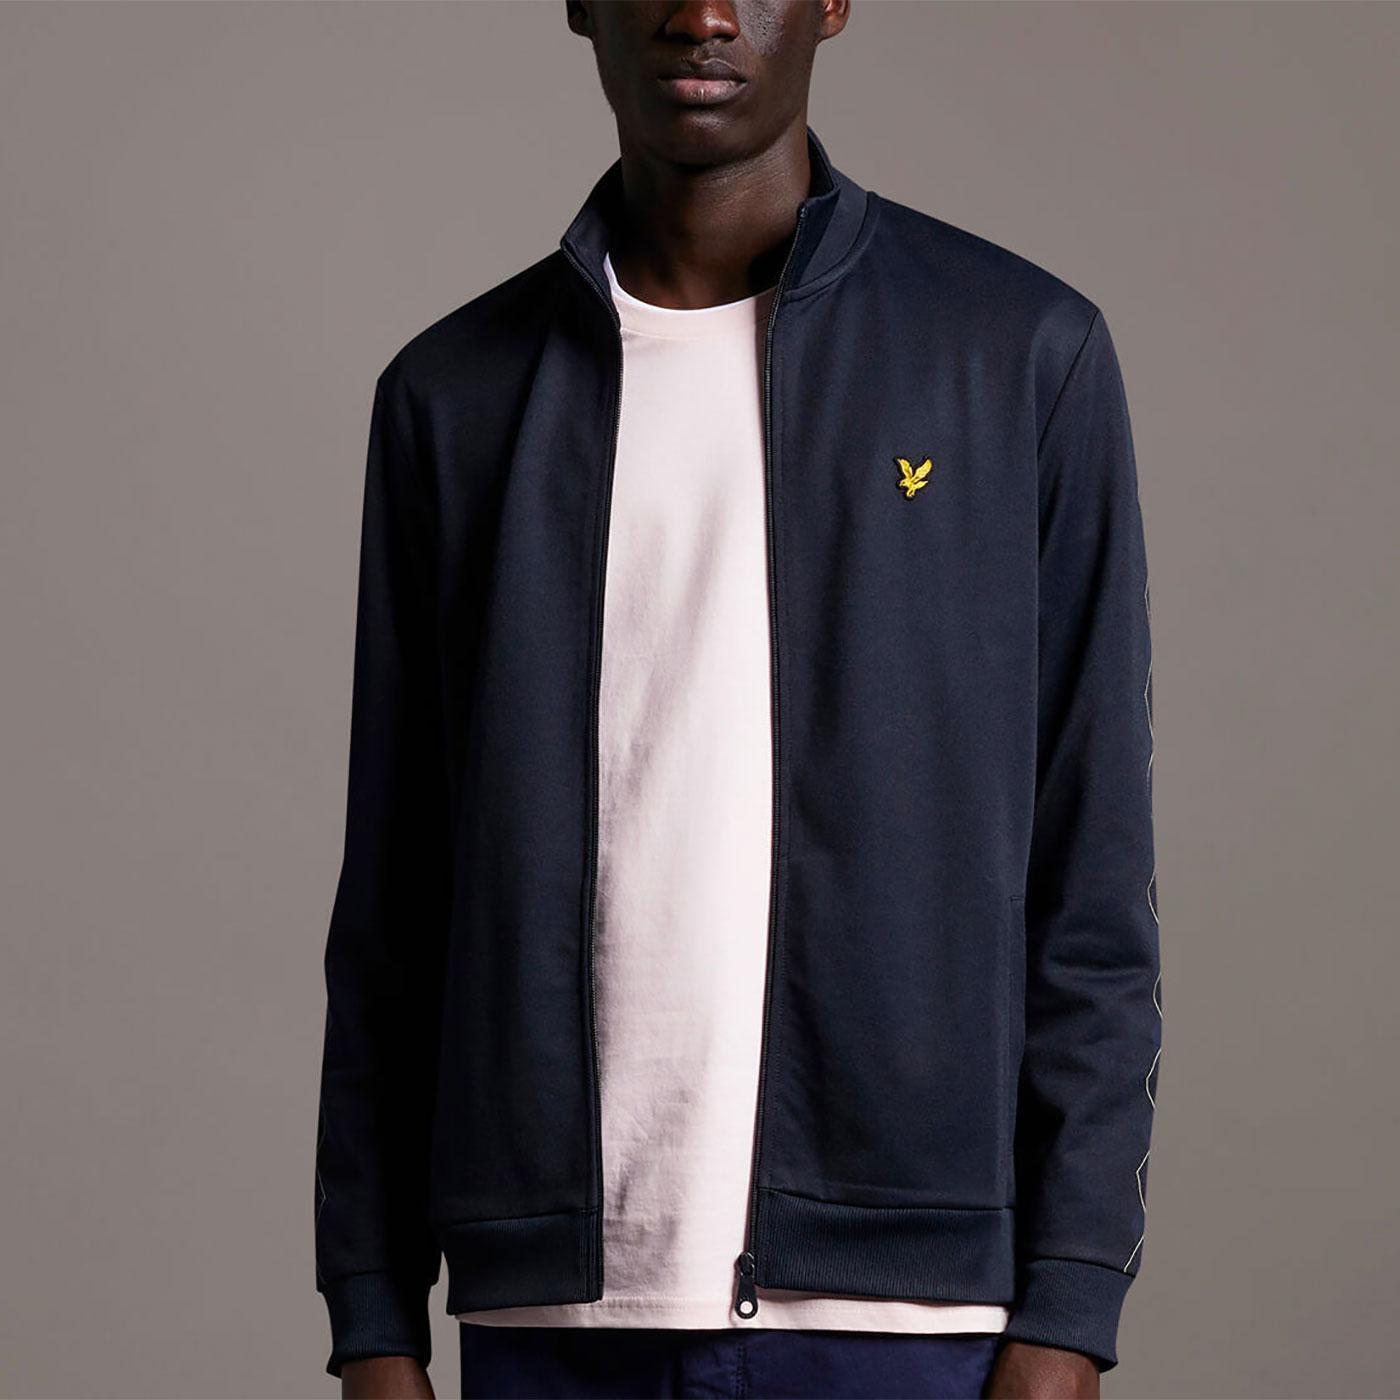 LYLE & SCOTT Retro Argyle Zip Through Track Top